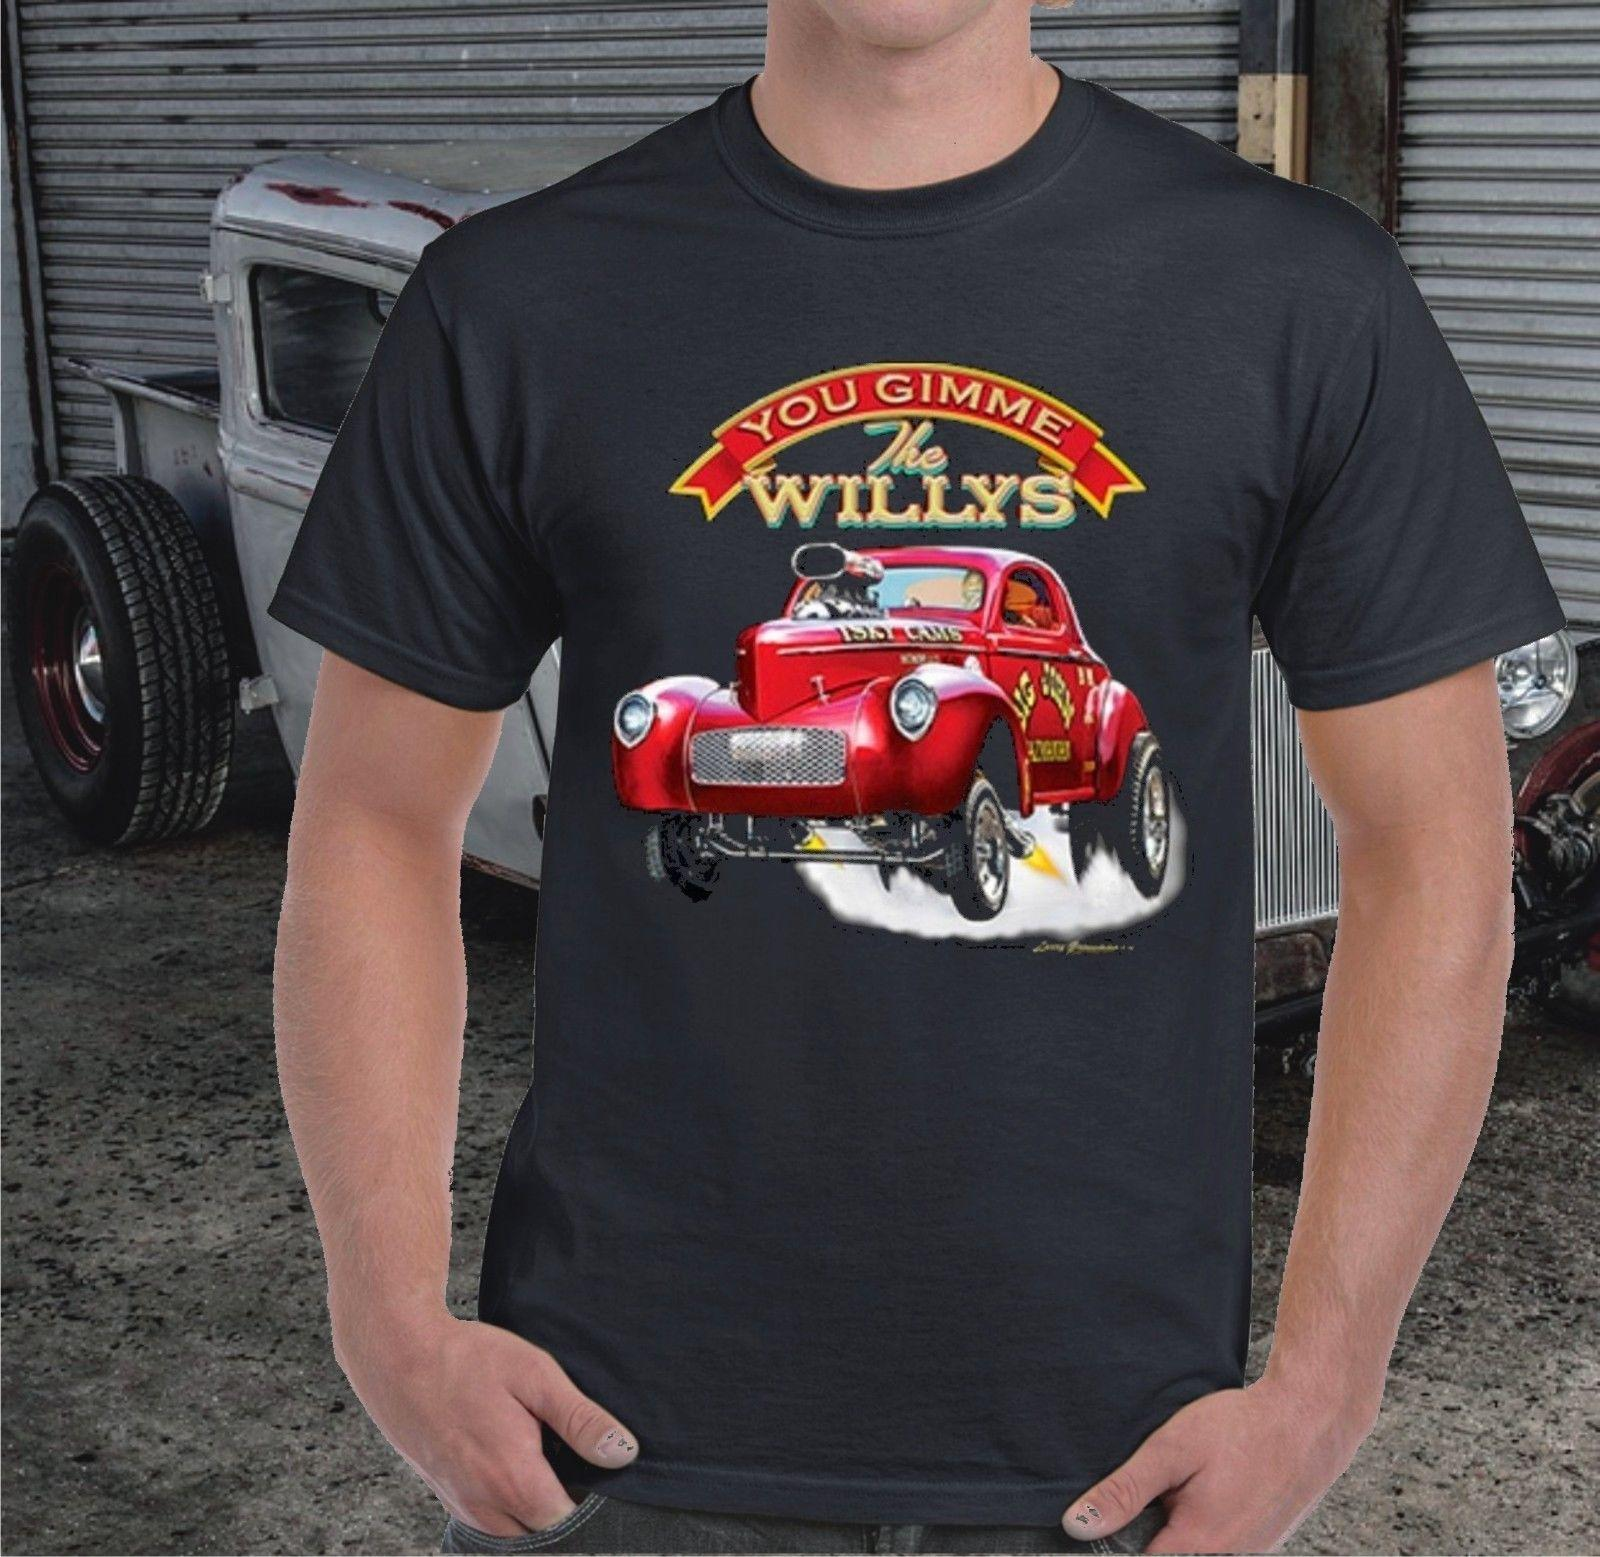 859e57882 YOU GIMME THE WILLYS HOT ROD / RAT ROD T SHIRT Print T Shirt Men ,Short  Sleeve TOP TEE,Fashion Summer Top Tee T Shirt Humor T Shirt With Shirt From  ...